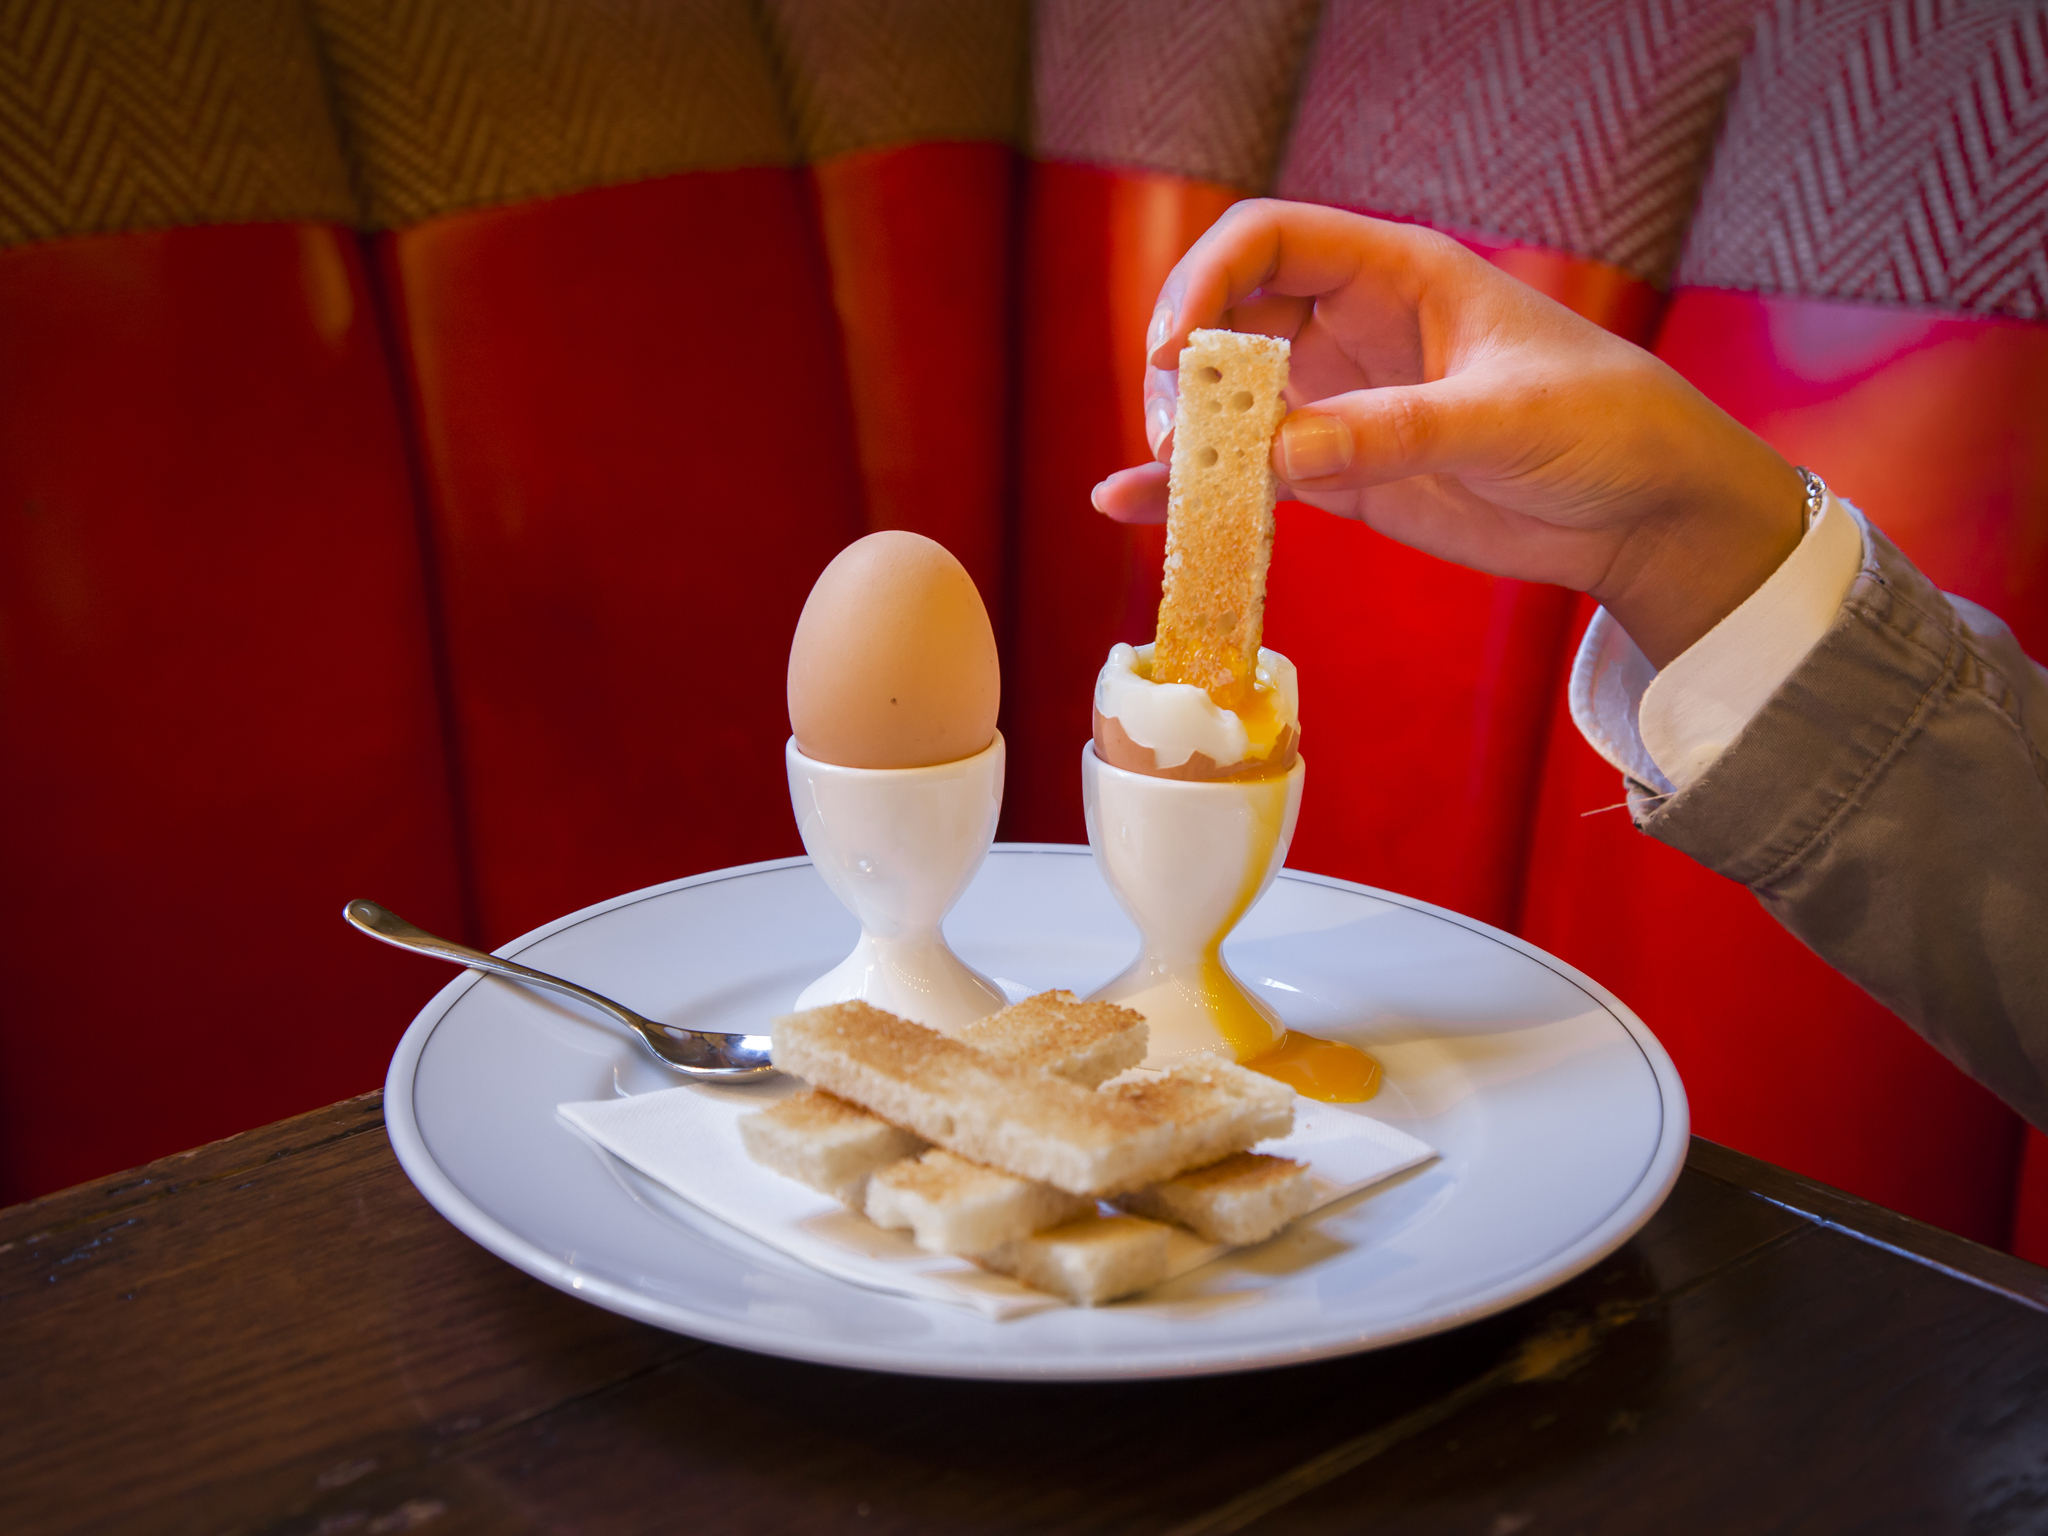 Eggs and soldiers at Holborn Dining Room, £6